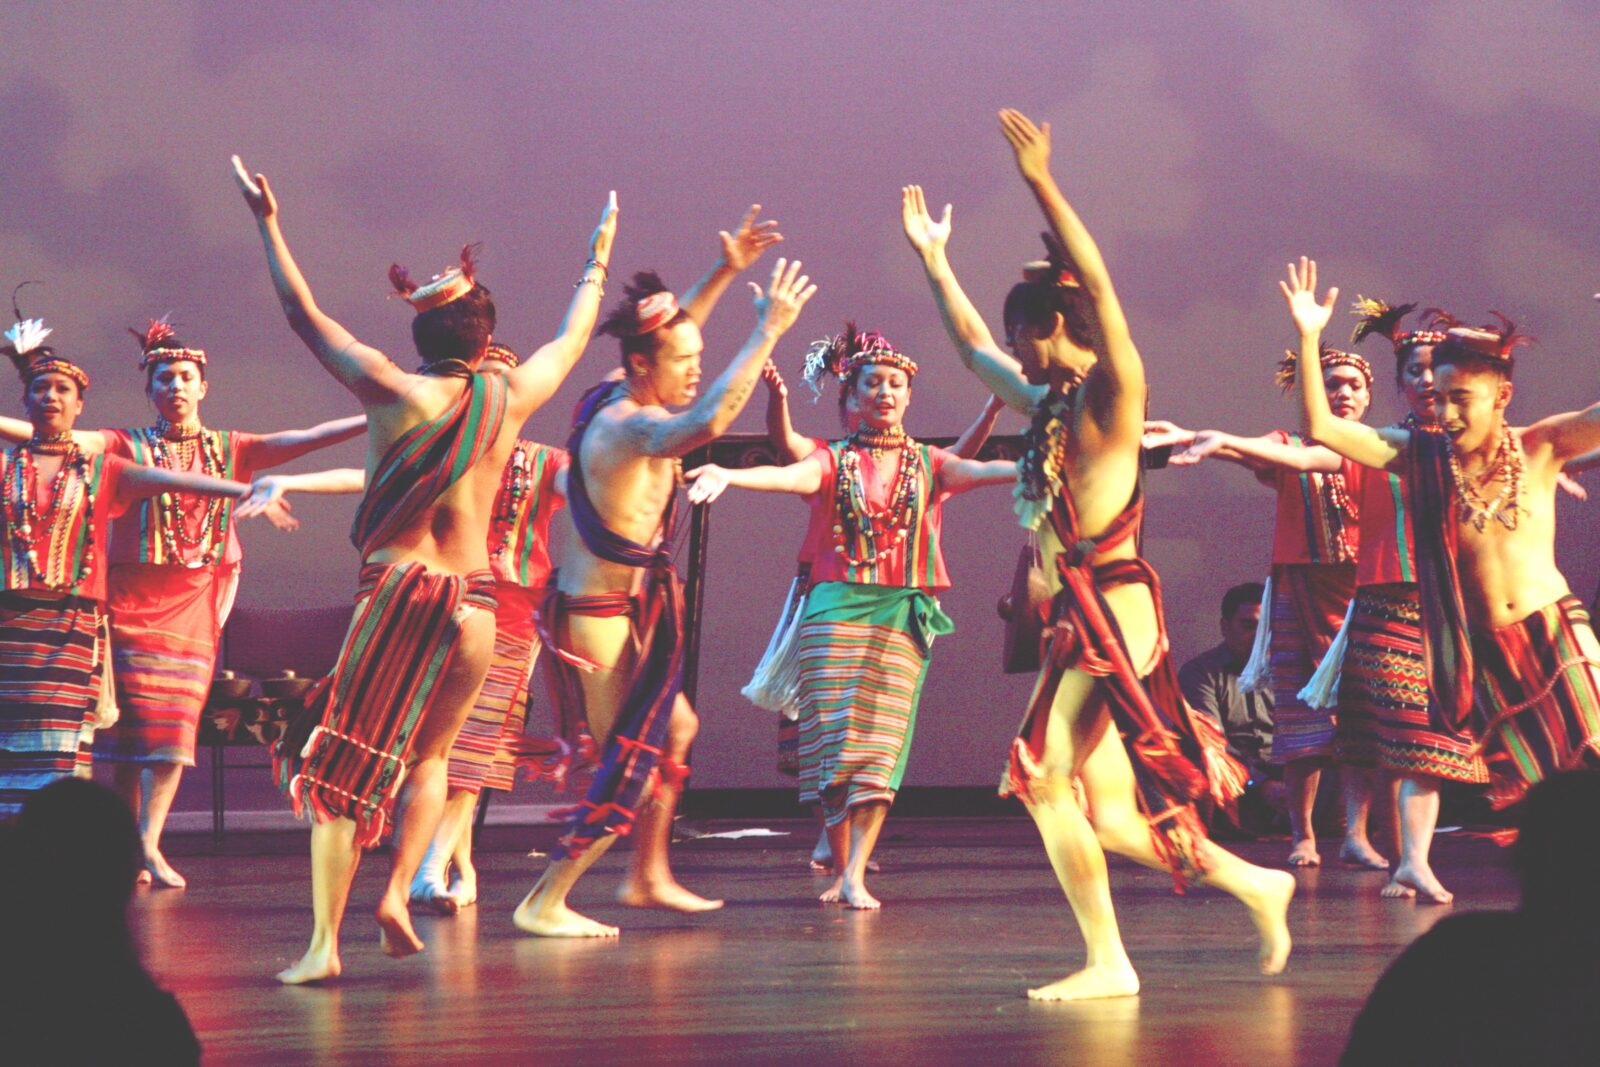 Annual Concert of Philippine Dances and Music Continues to  : Bibak all from www.usasianpost.com size 3504 x 2336 jpeg 1911kB